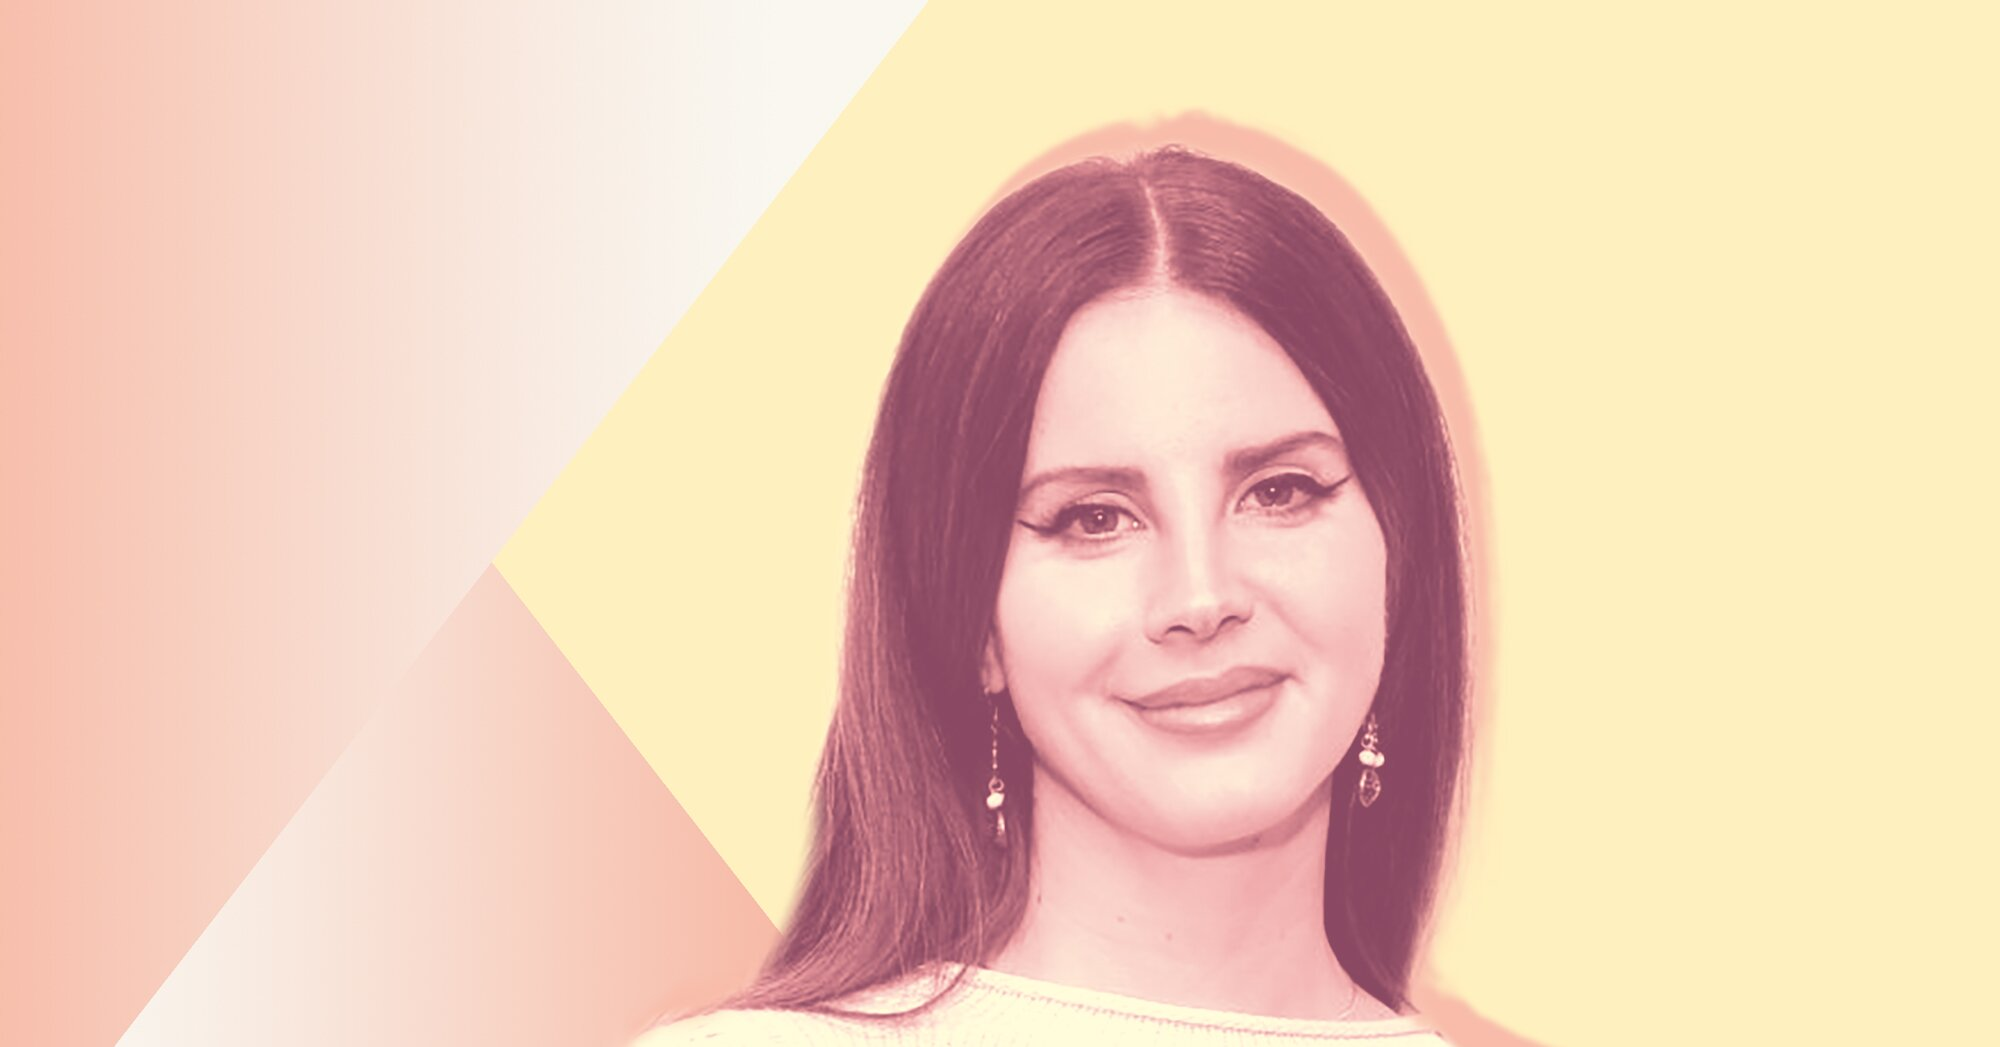 Lana Del Rey's Mesh Mask Is Sparking Backlash Among Fans